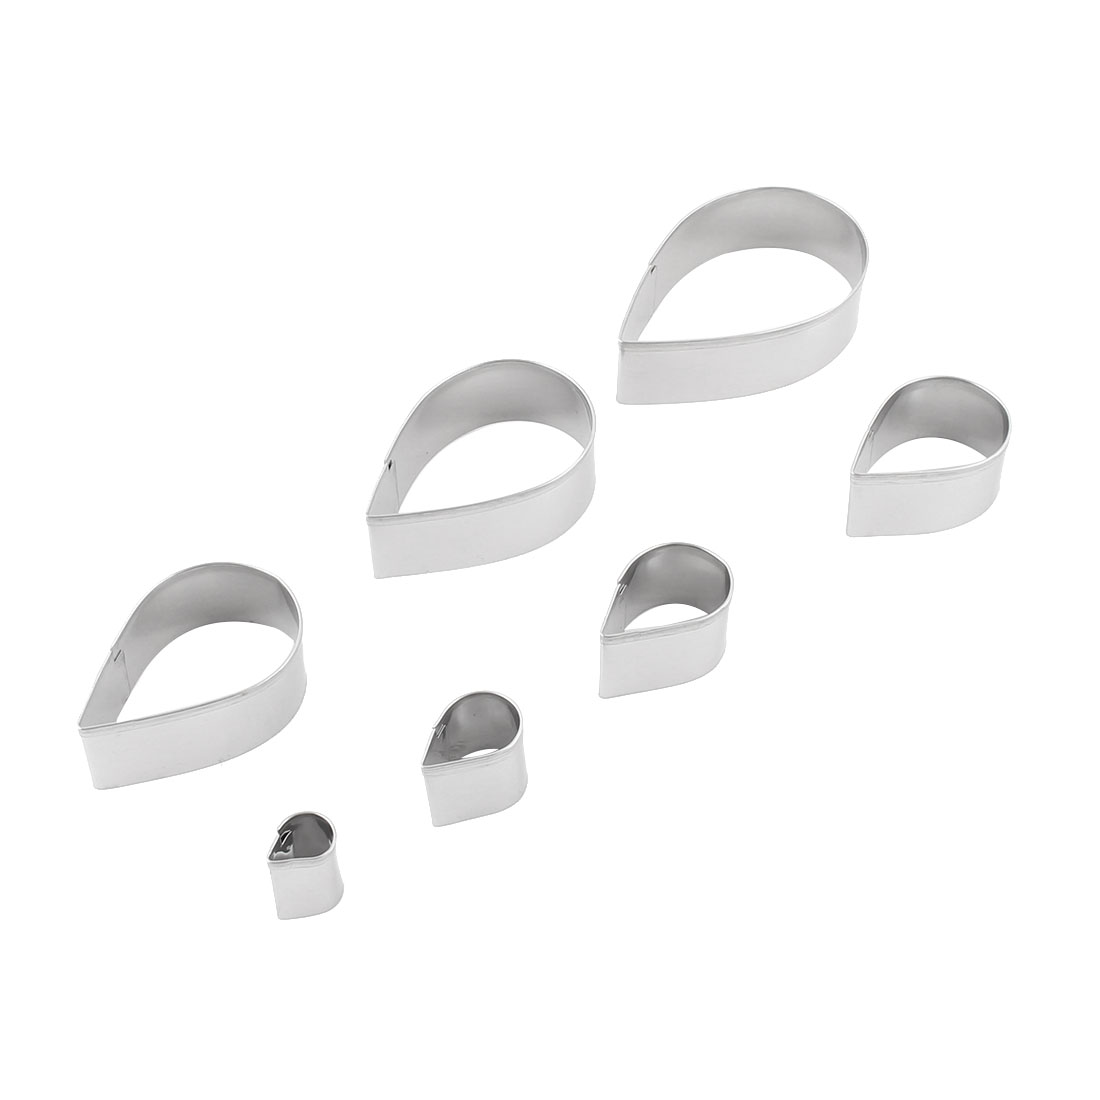 Home Kitchen Stainless Steel Water Droplet Design Cake Cookie Cutter Mold 7 in 1